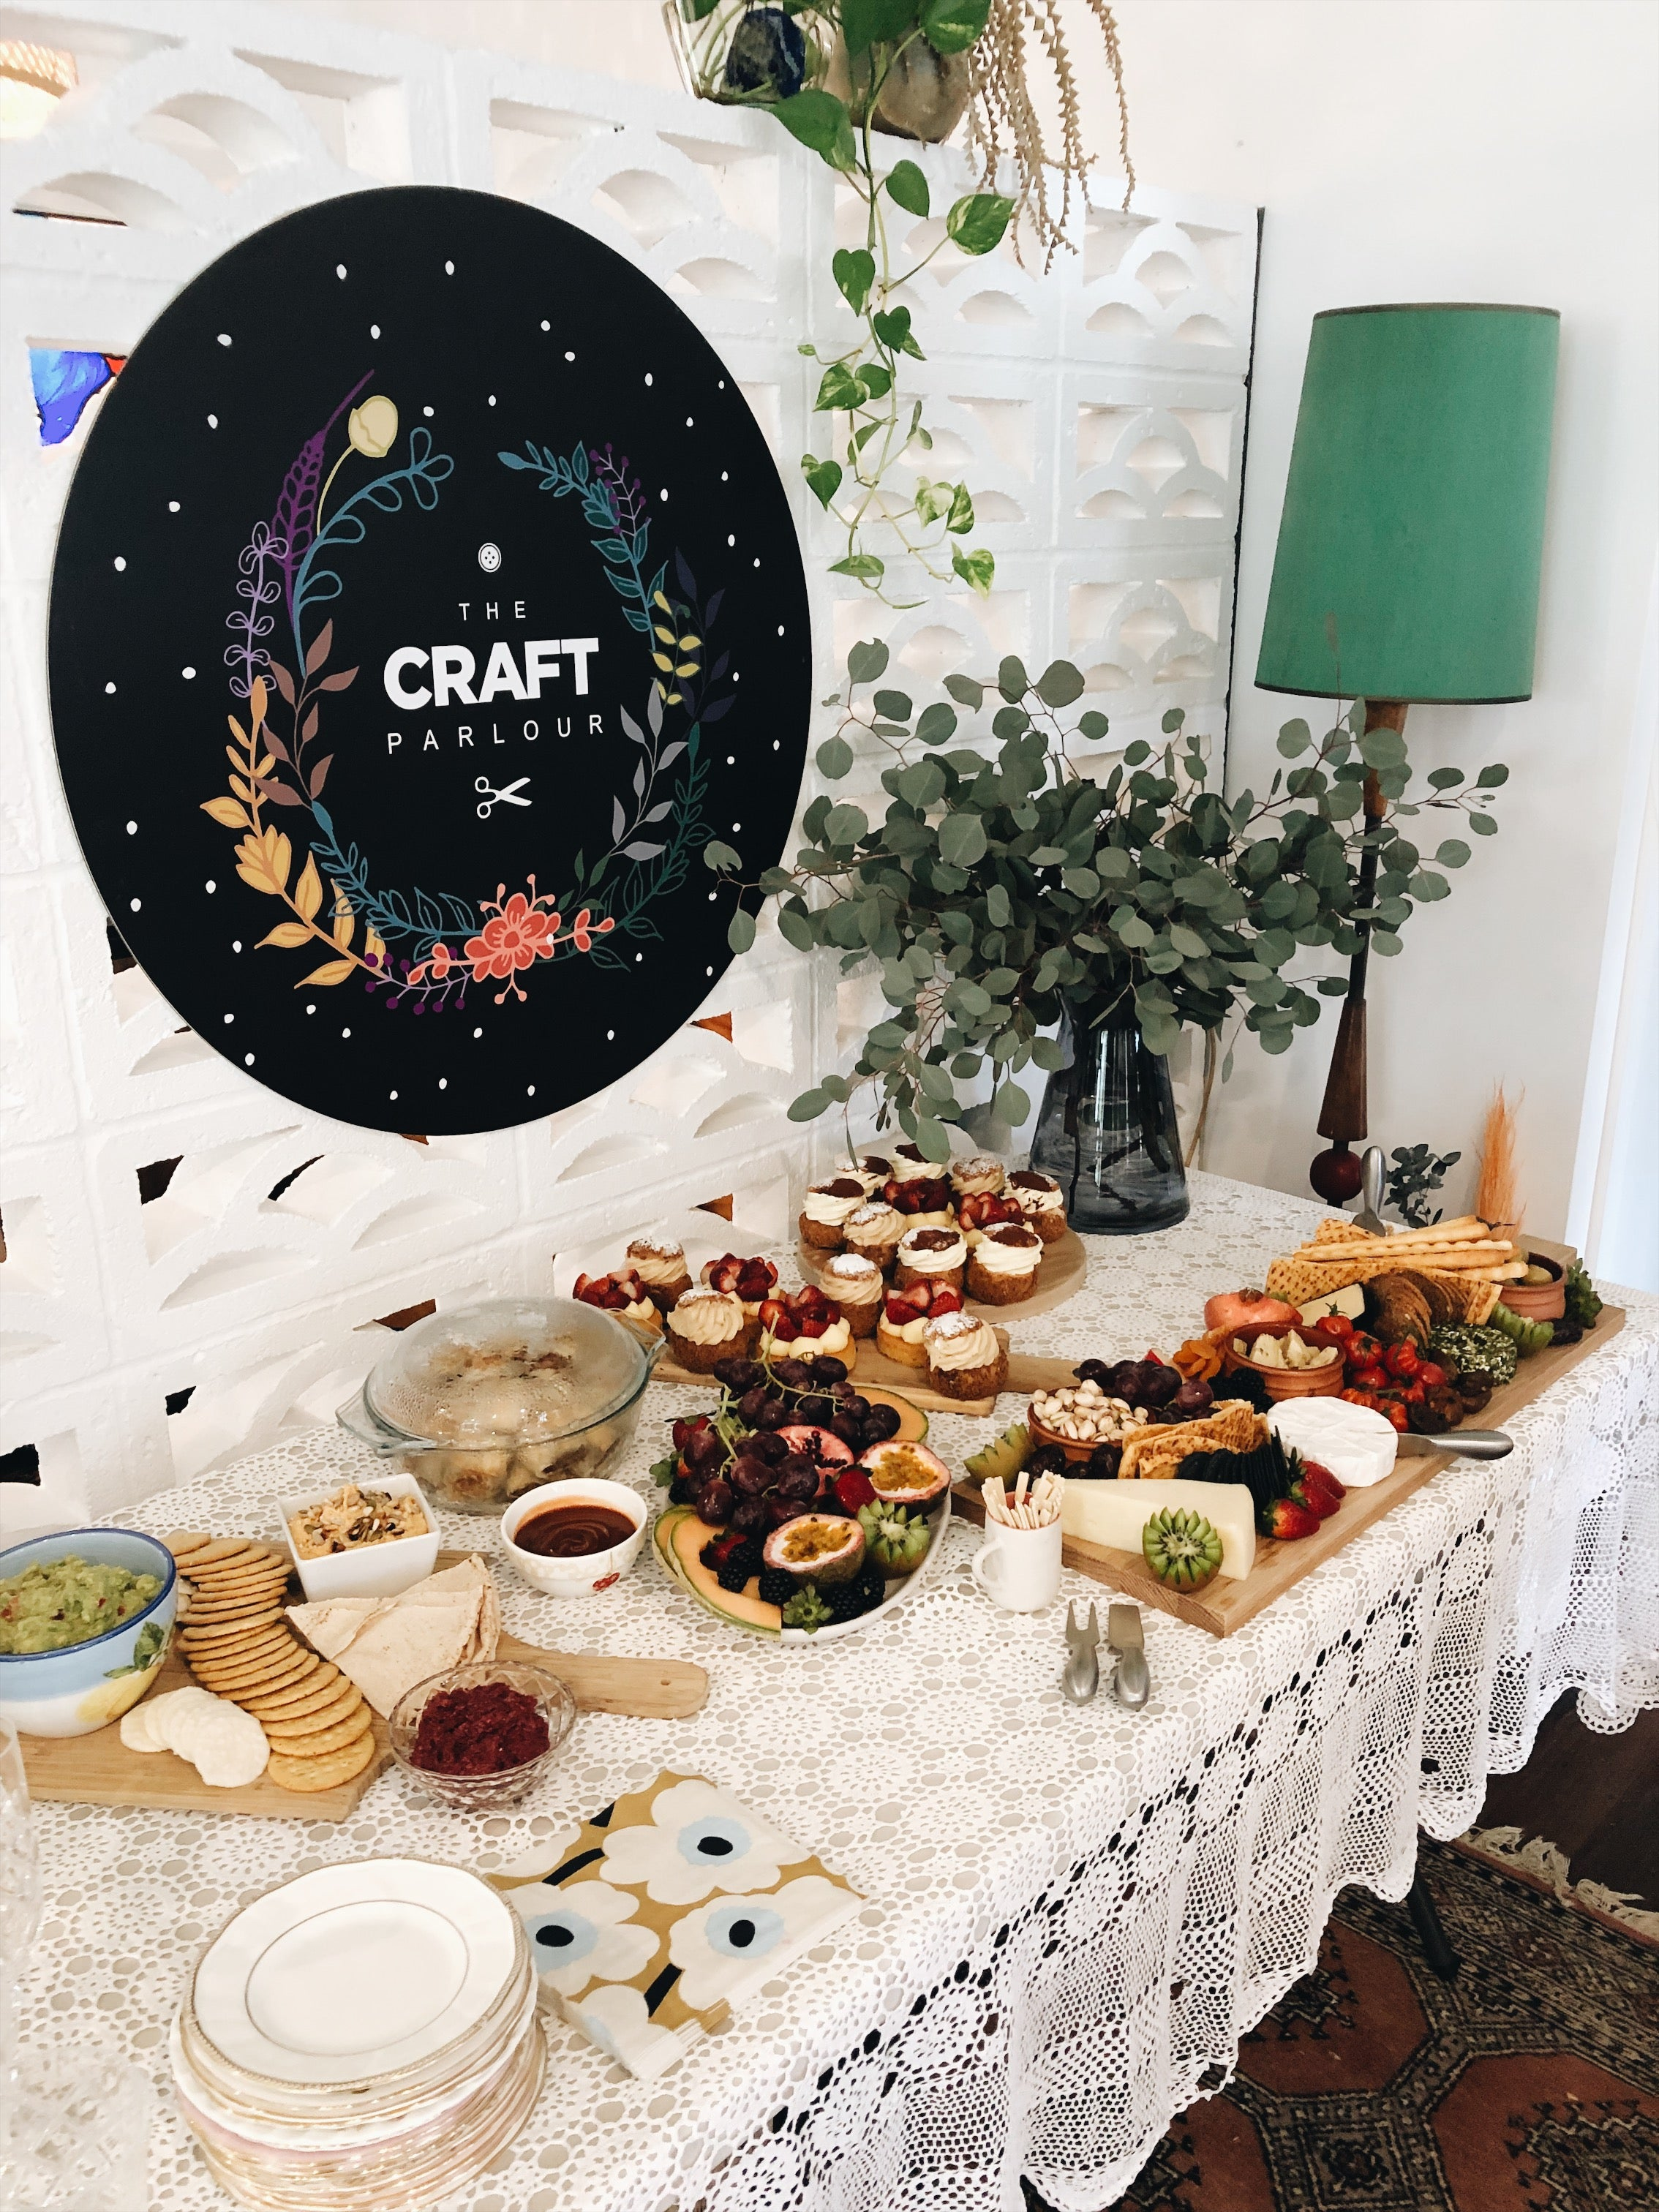 Epic food platters for The Craft Parlour workshop